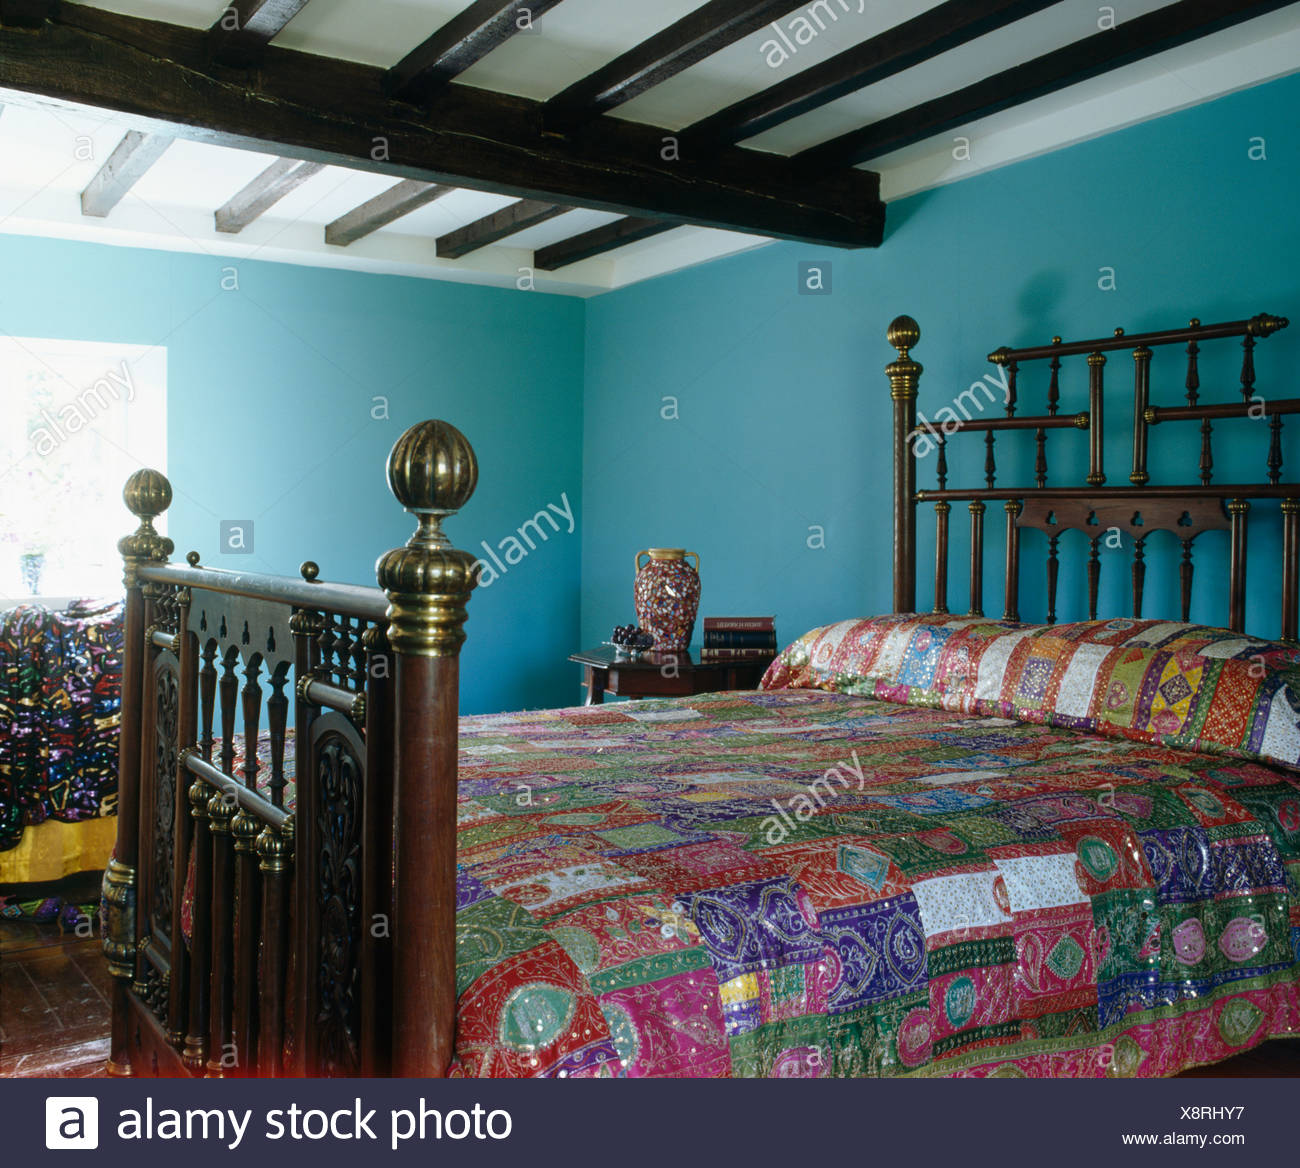 Colorful patchwork quilt on antique bed in blue country bedroom with beamed ceiling Stock Photo